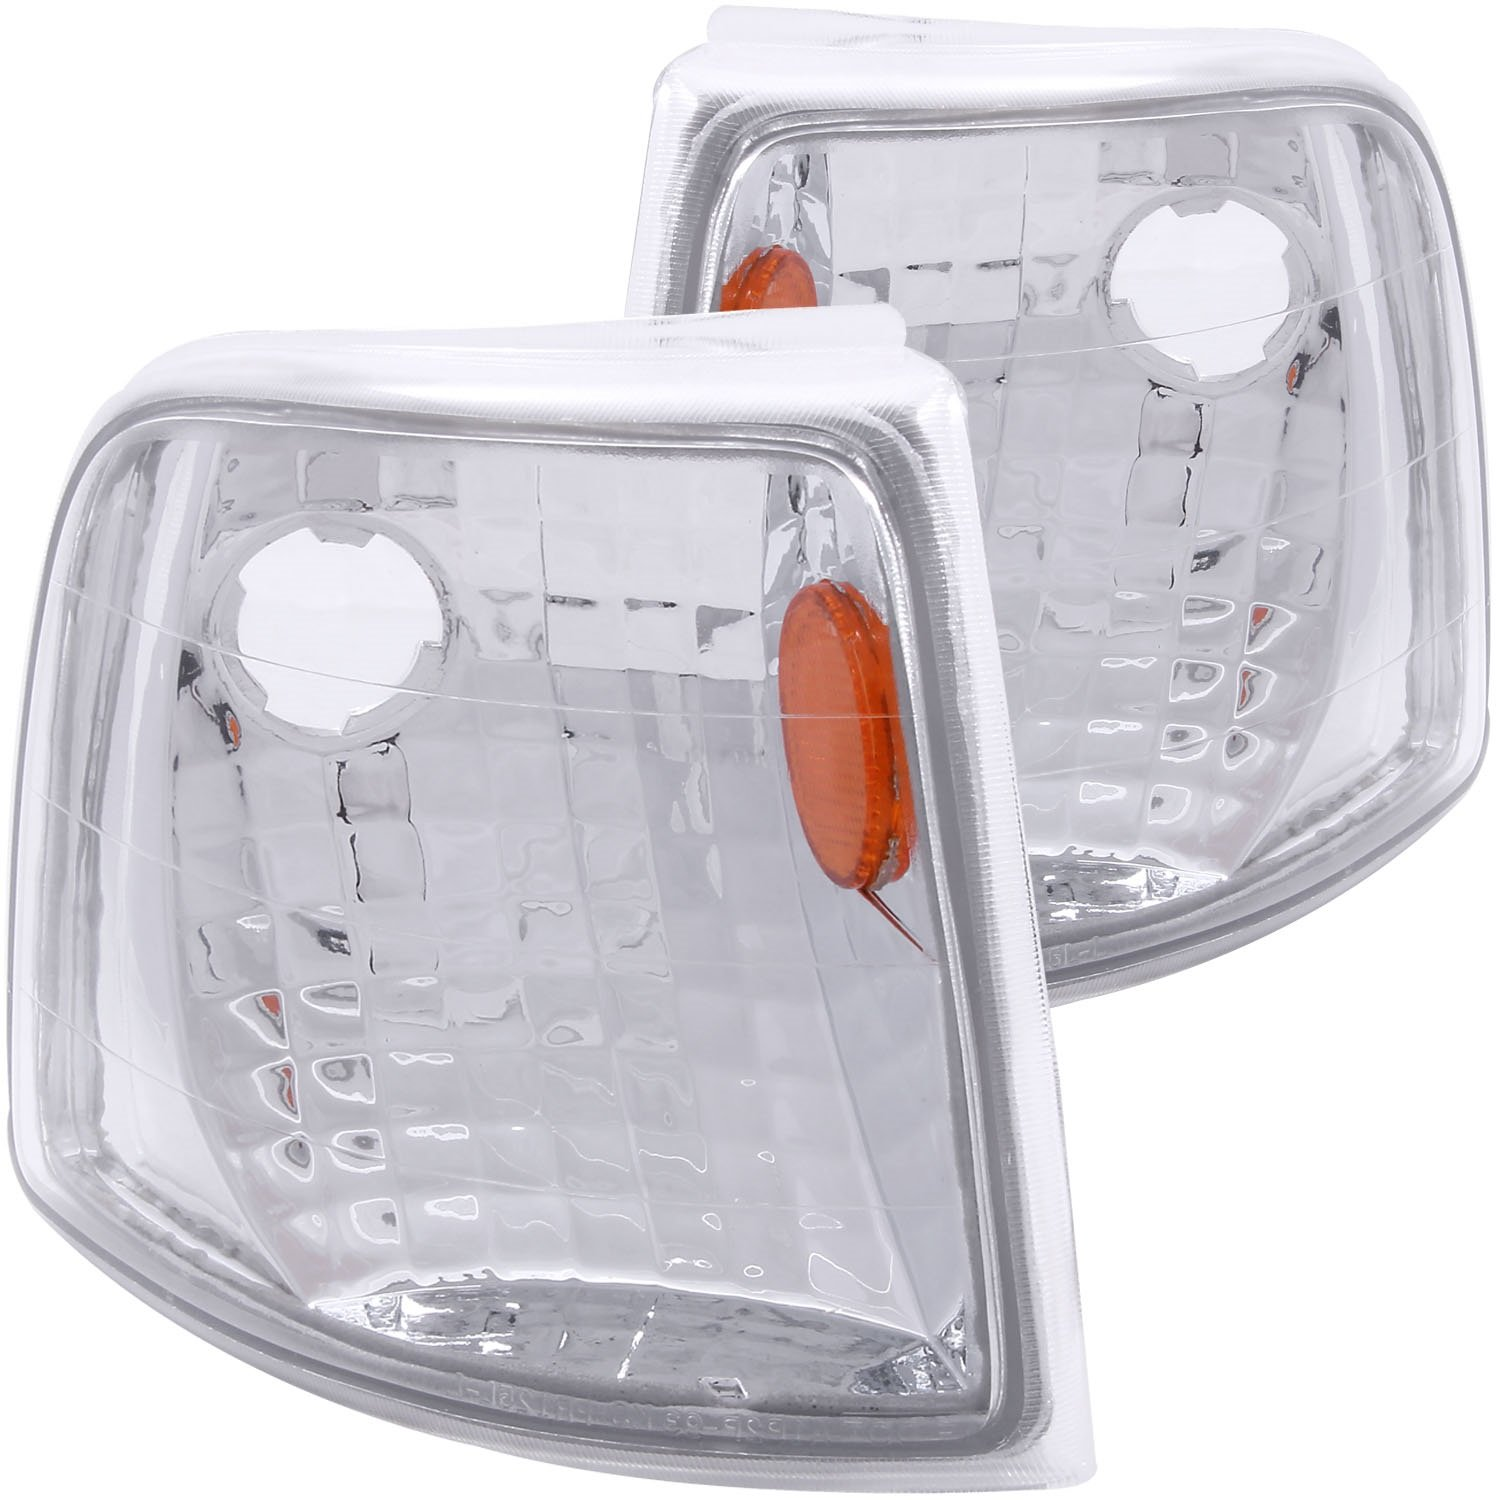 Anzo USA 521017 Ford Ranger Euro w/Amber Reflector Cornering Light Assembly - (Sold in Pairs)